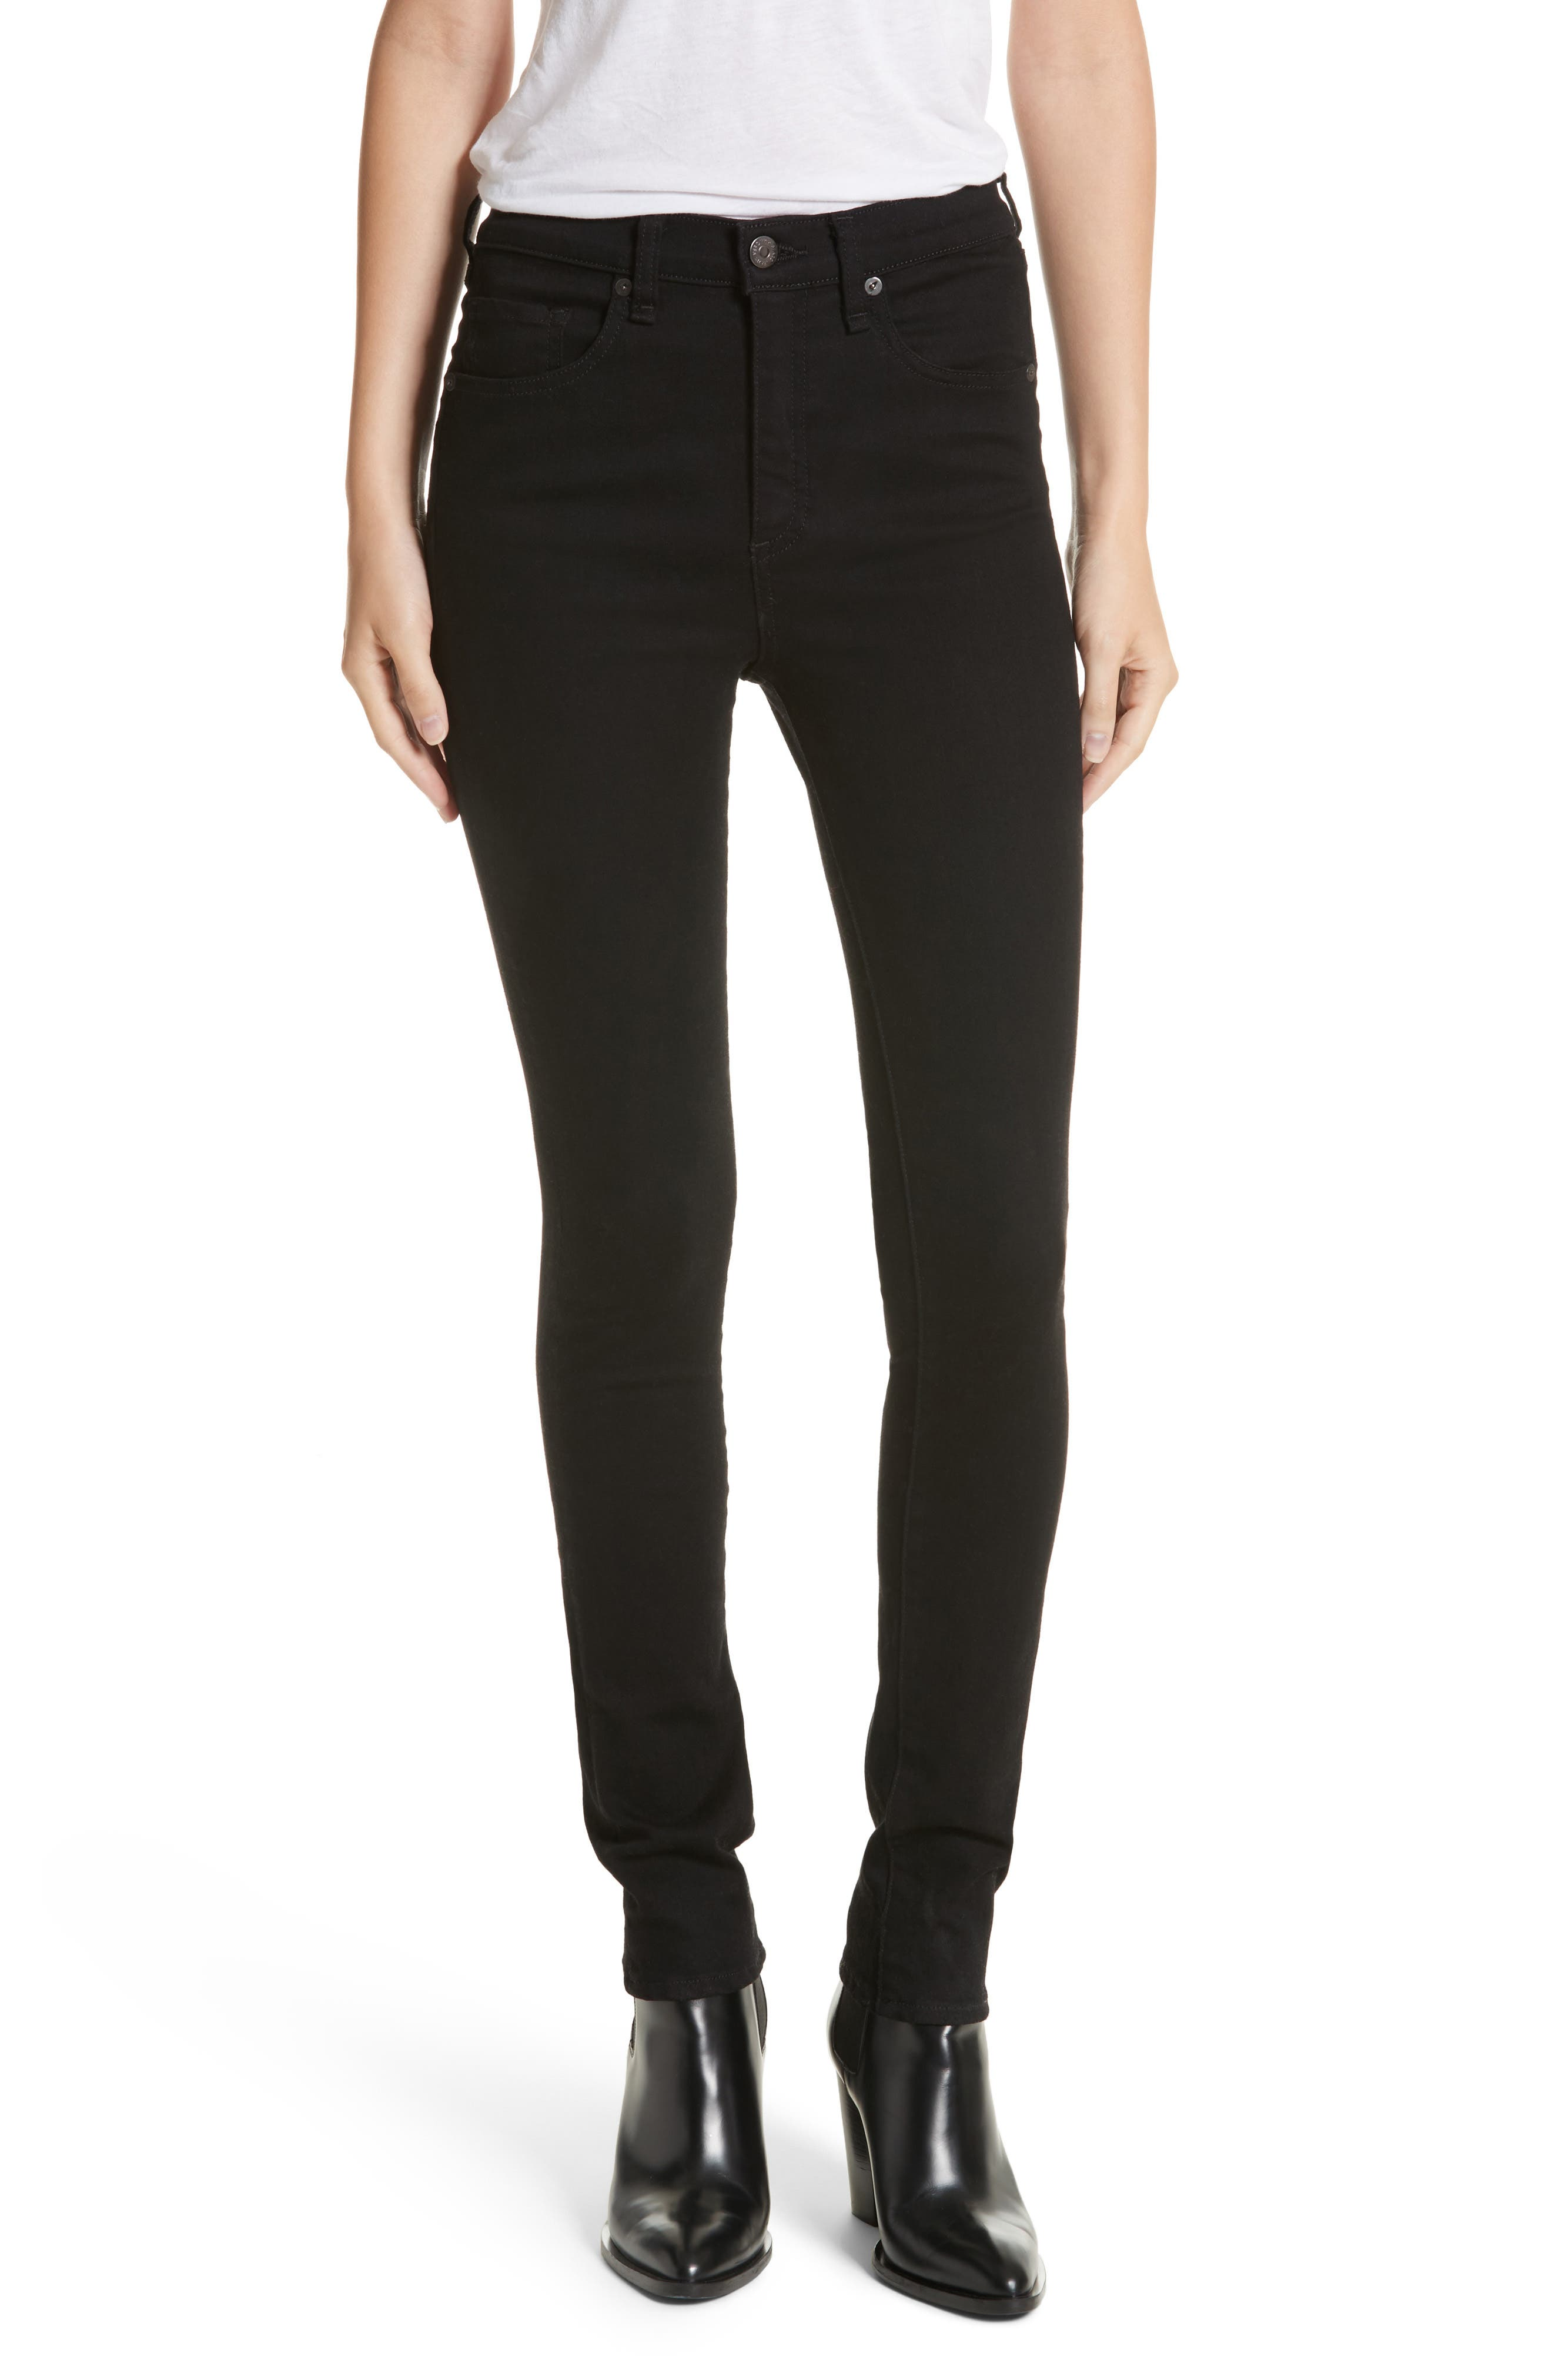 Kate 10 Skinny Jeans,                         Main,                         color, Raven